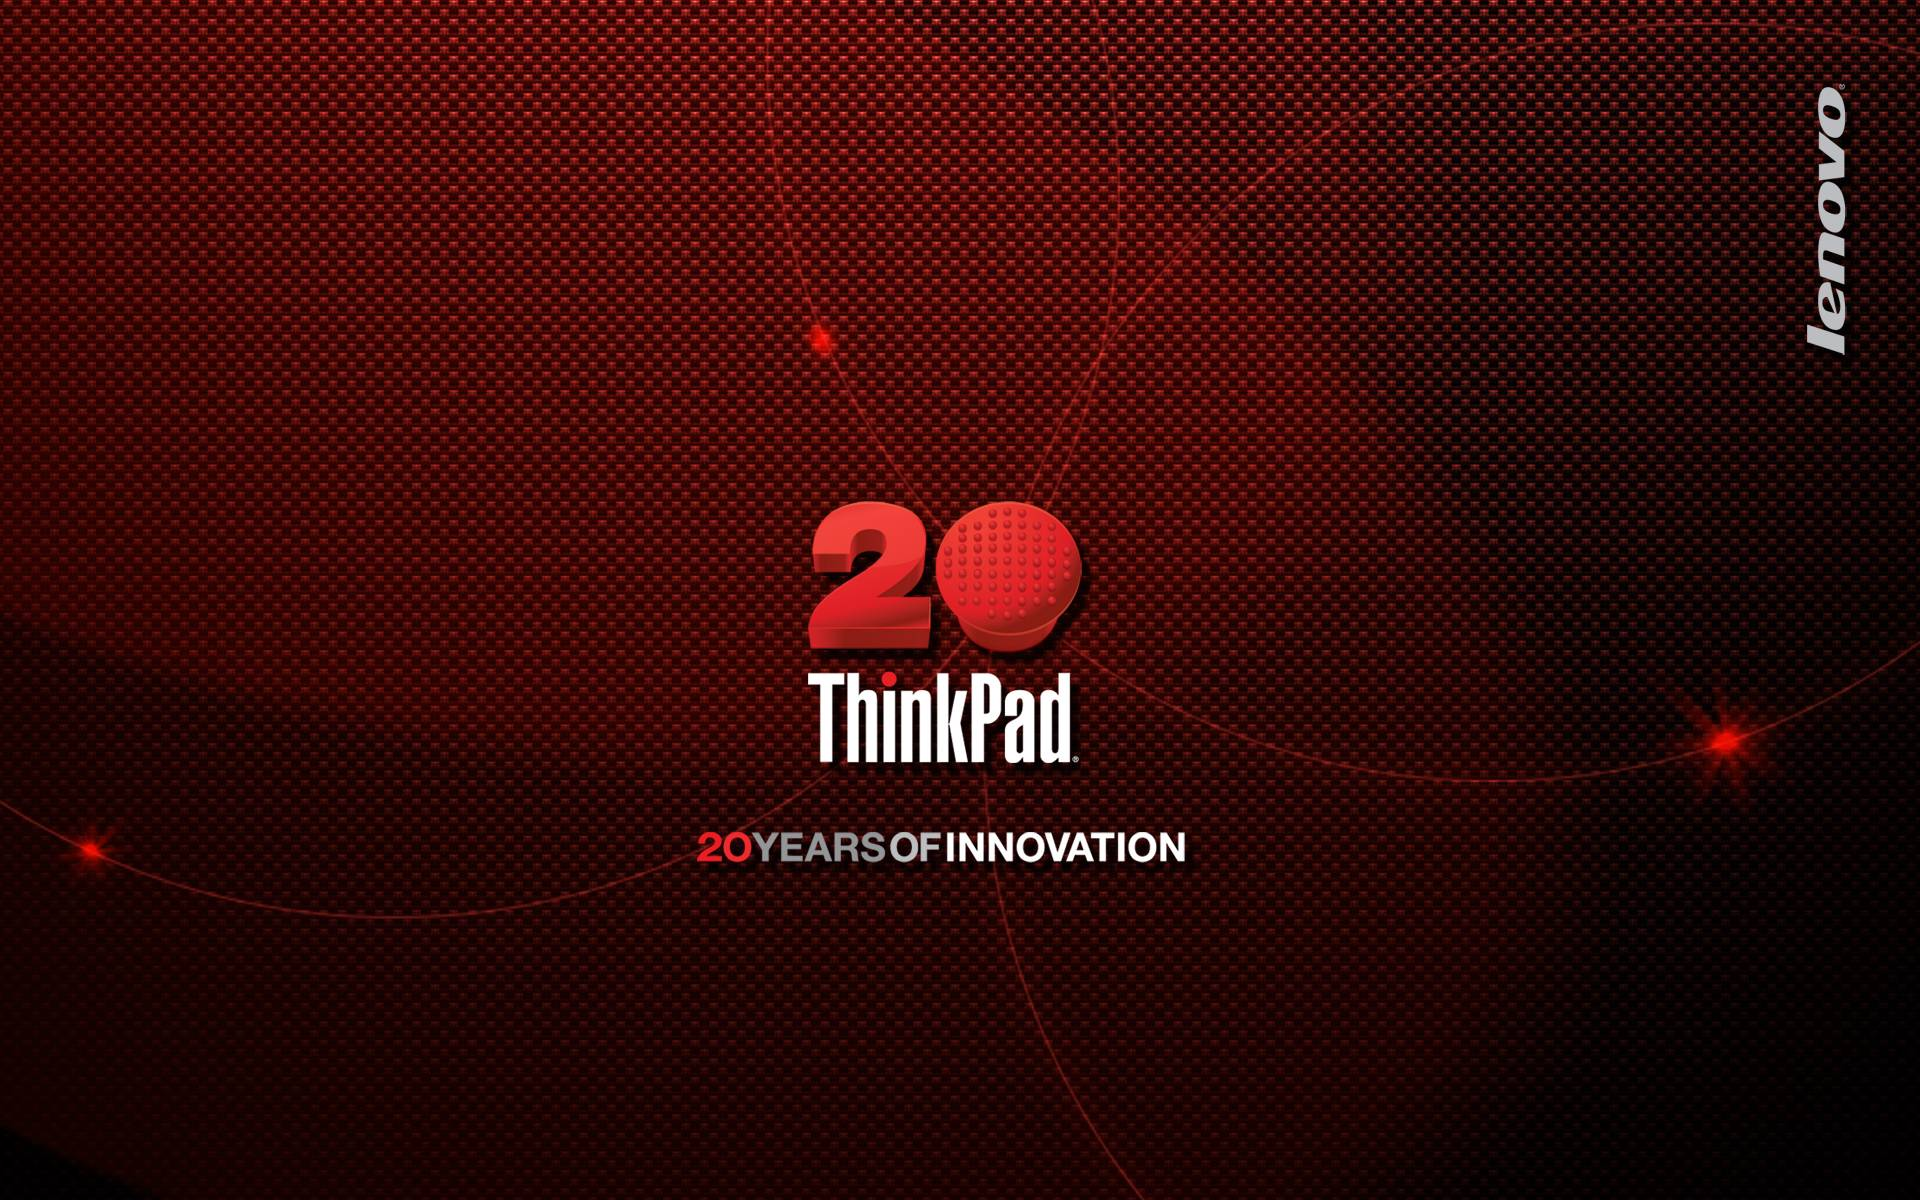 thinkpad wallpapers wallpaper - photo #4